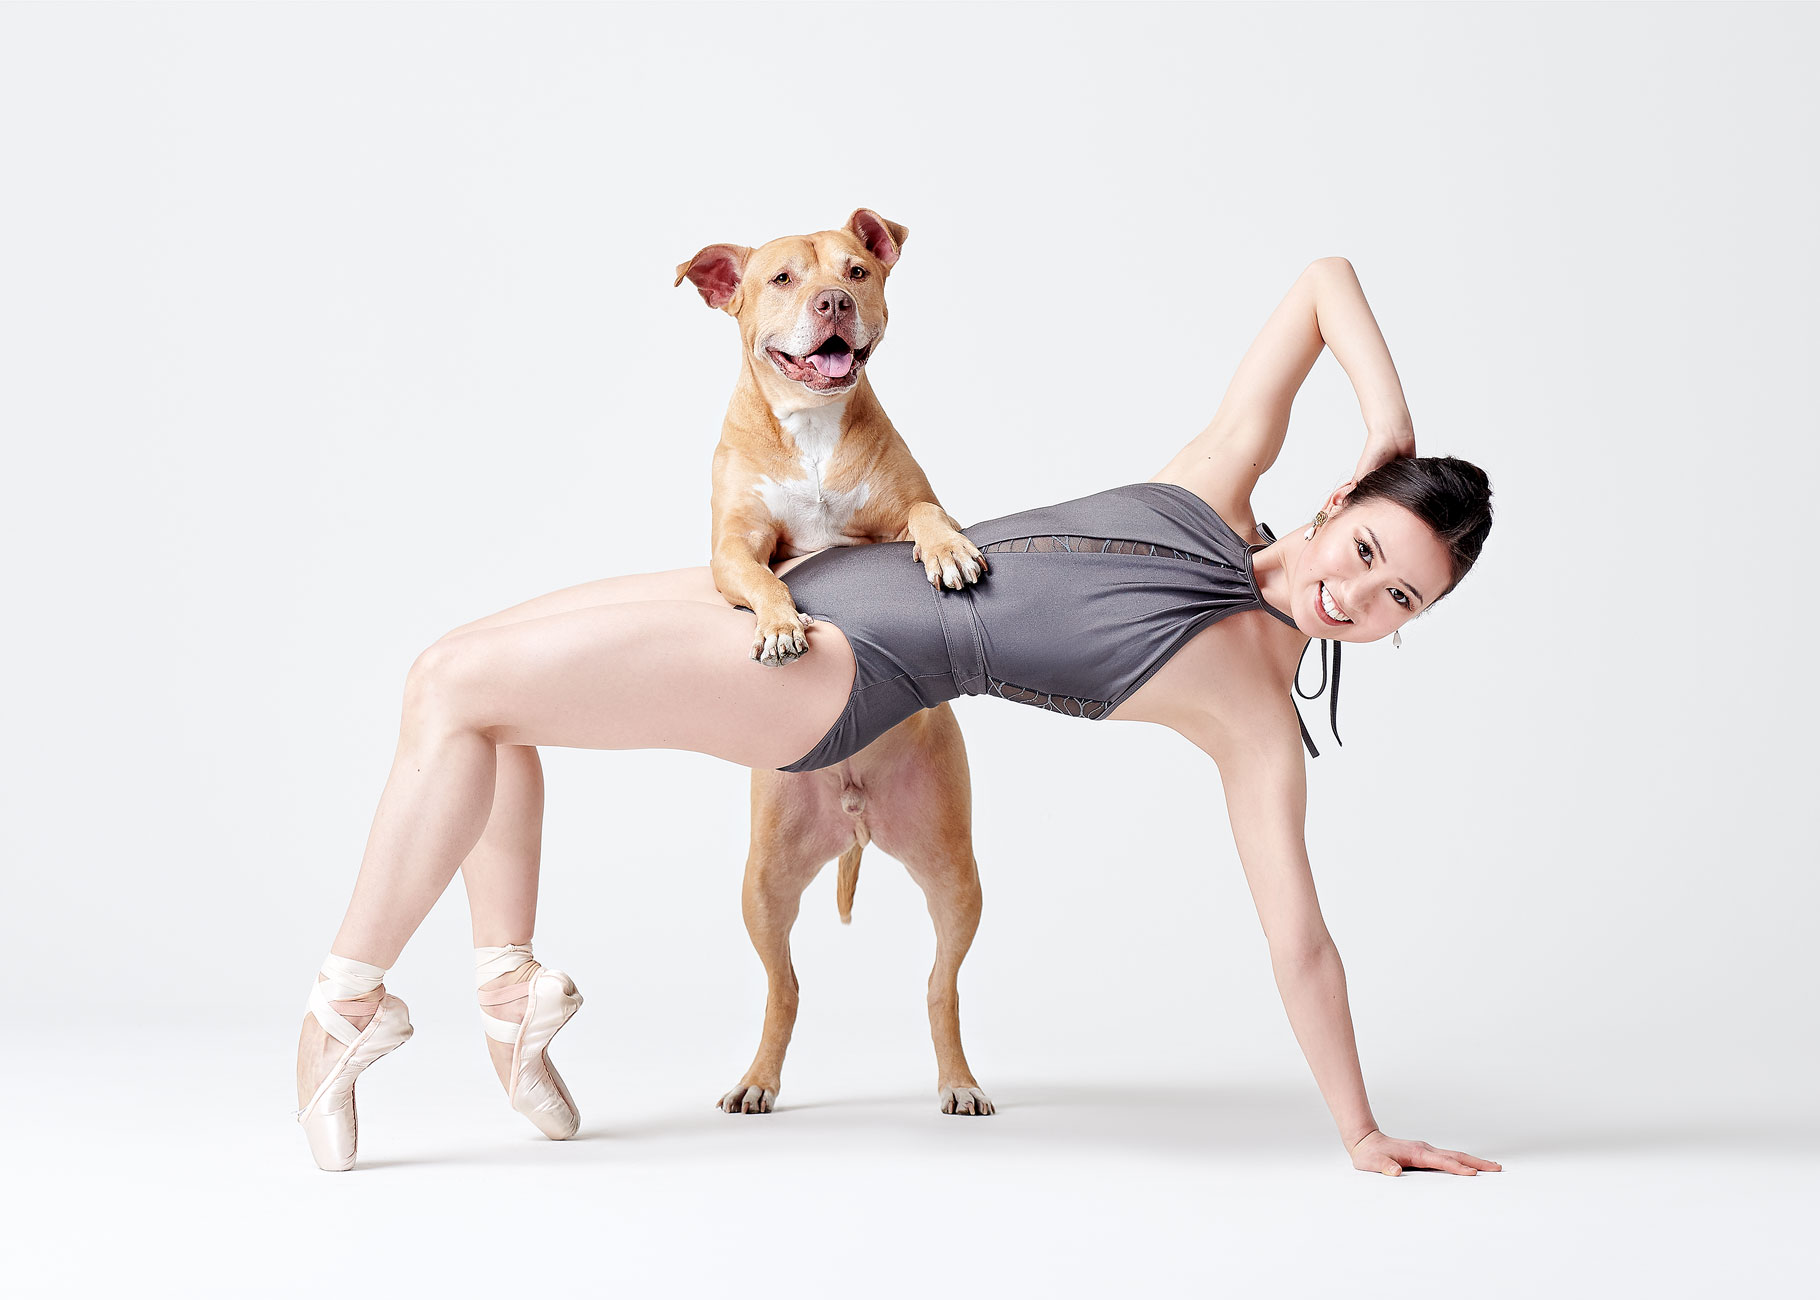 Dancers_and_Dogs_02